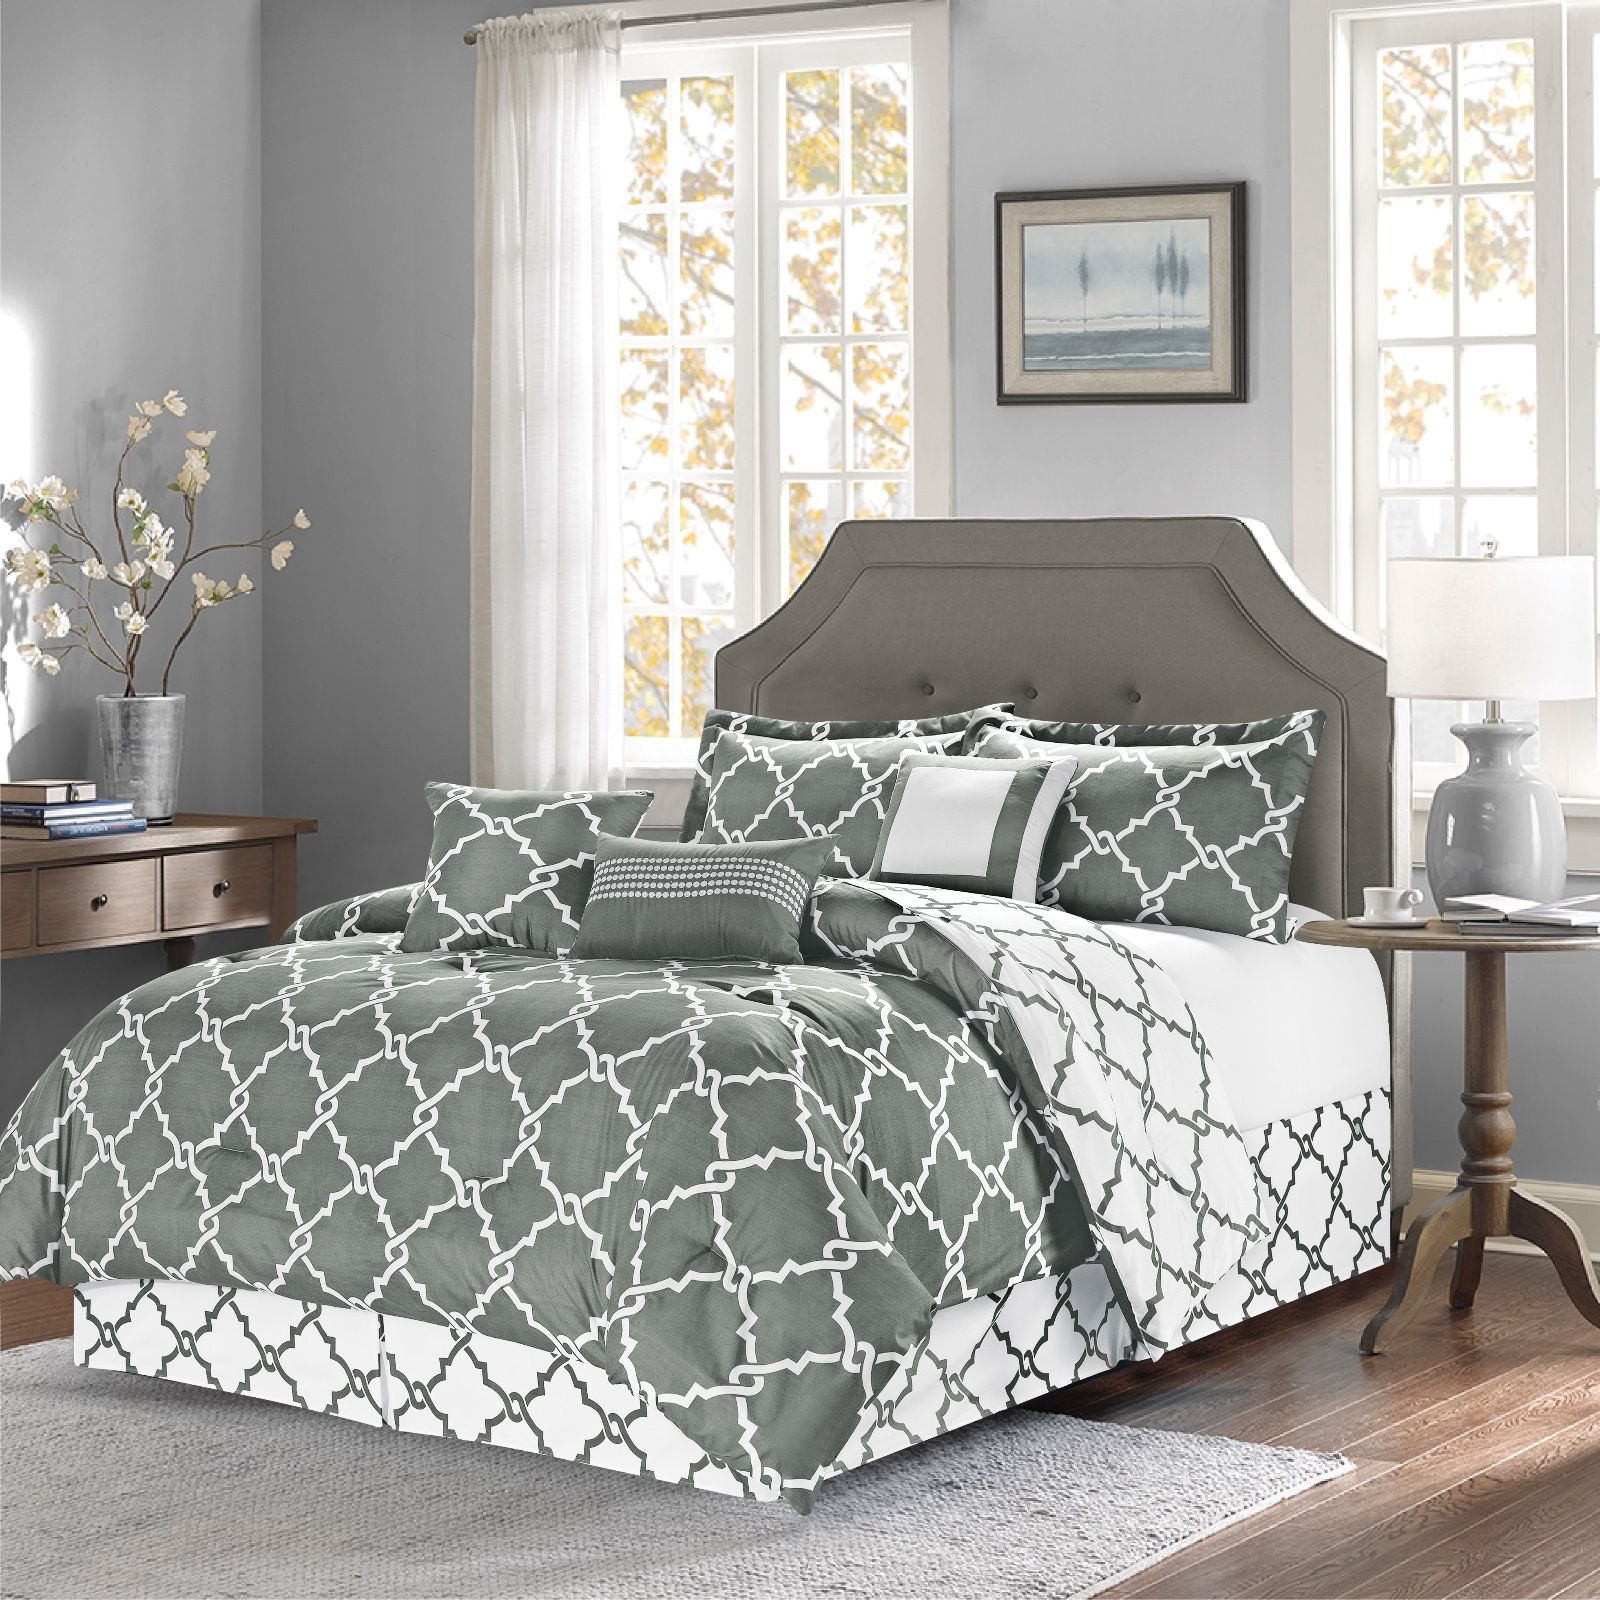 7-Piece Reversible Geometric Galaxy Comforter Set Oversized Gray - King Size